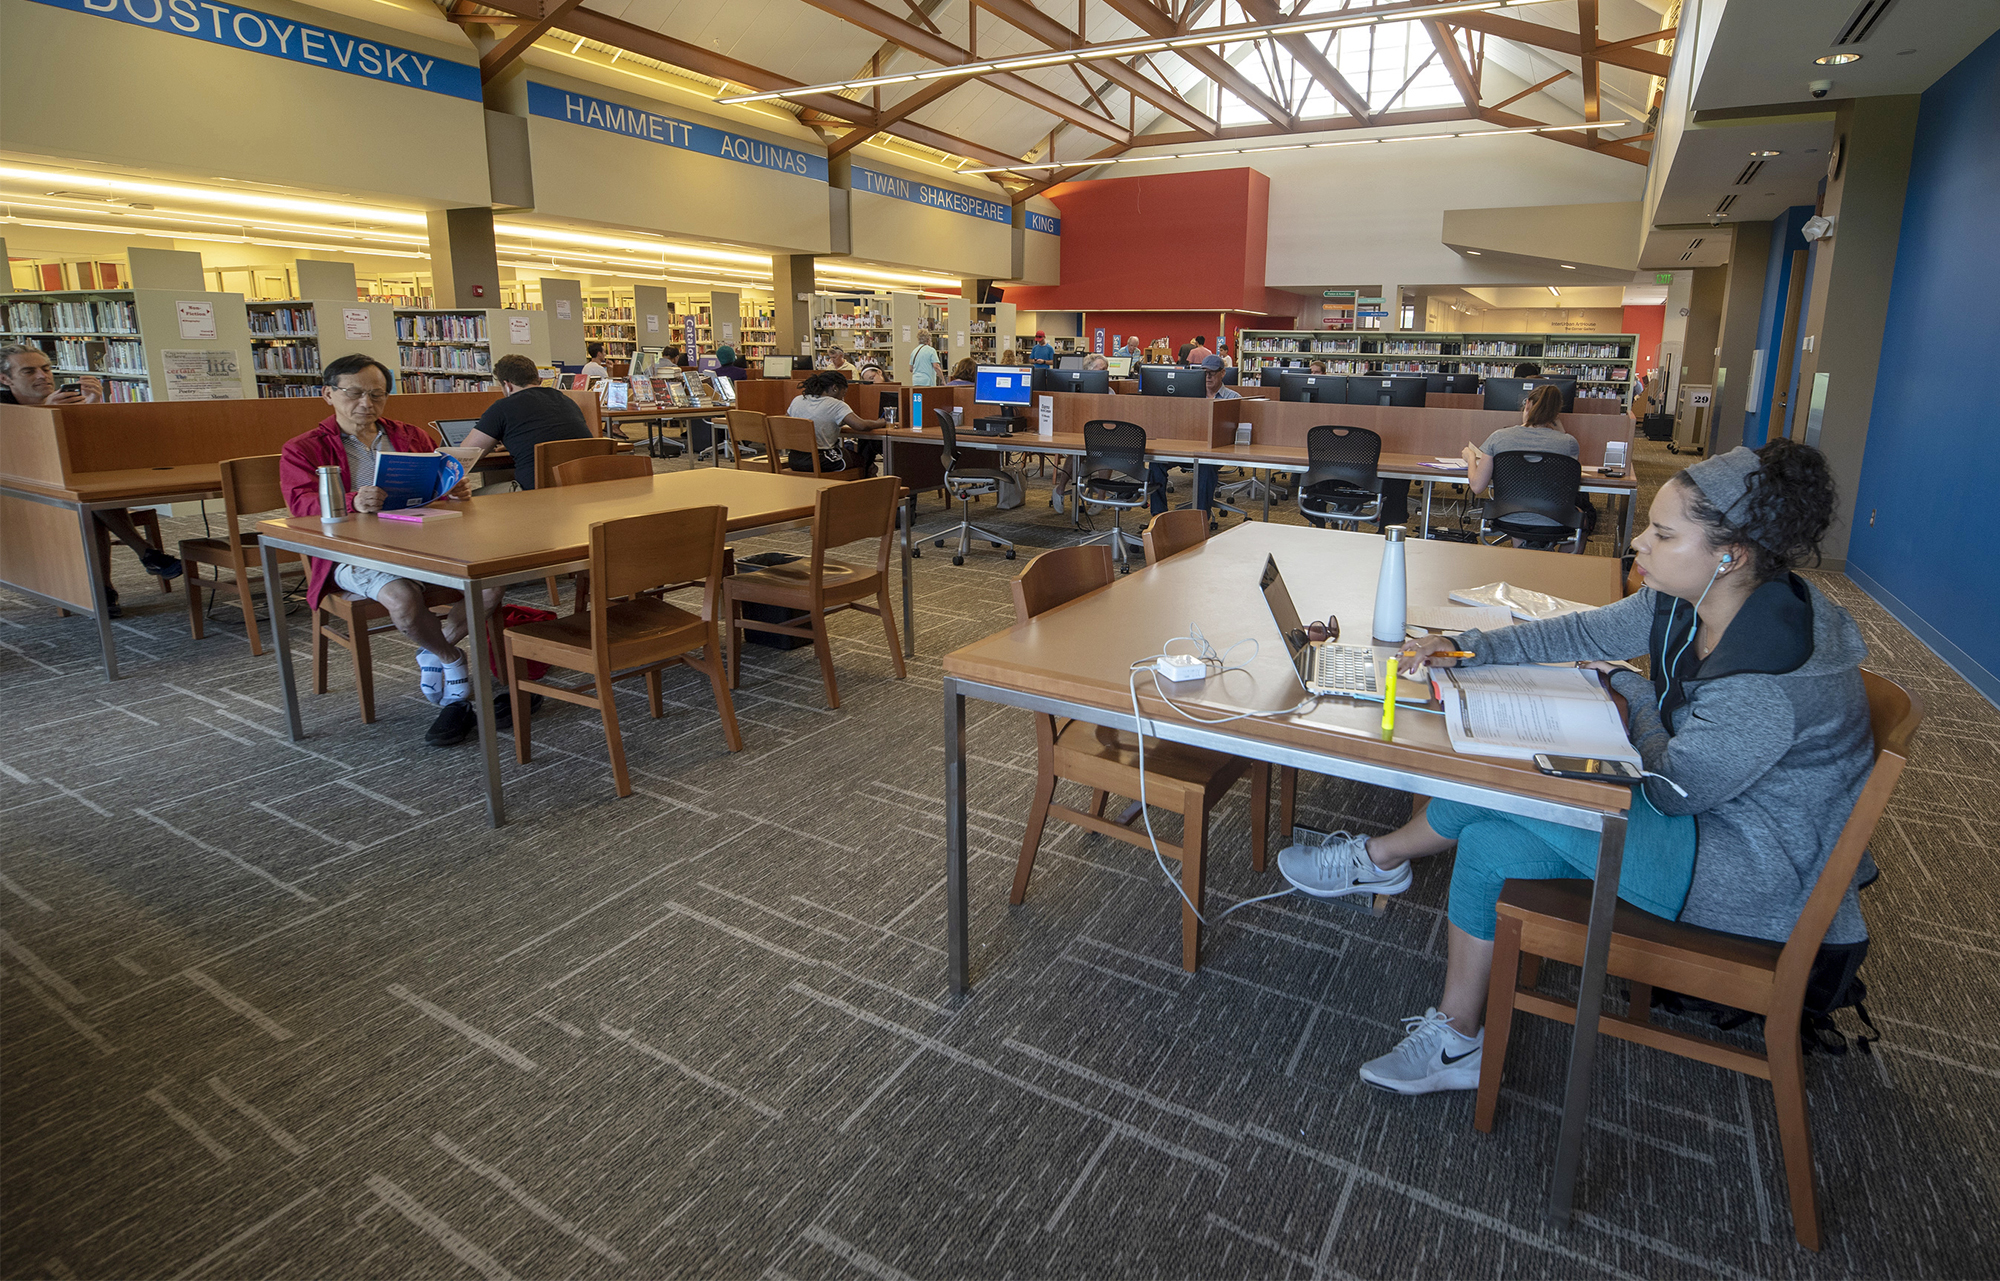 The Library provides access to information that supports and enriches people's lives